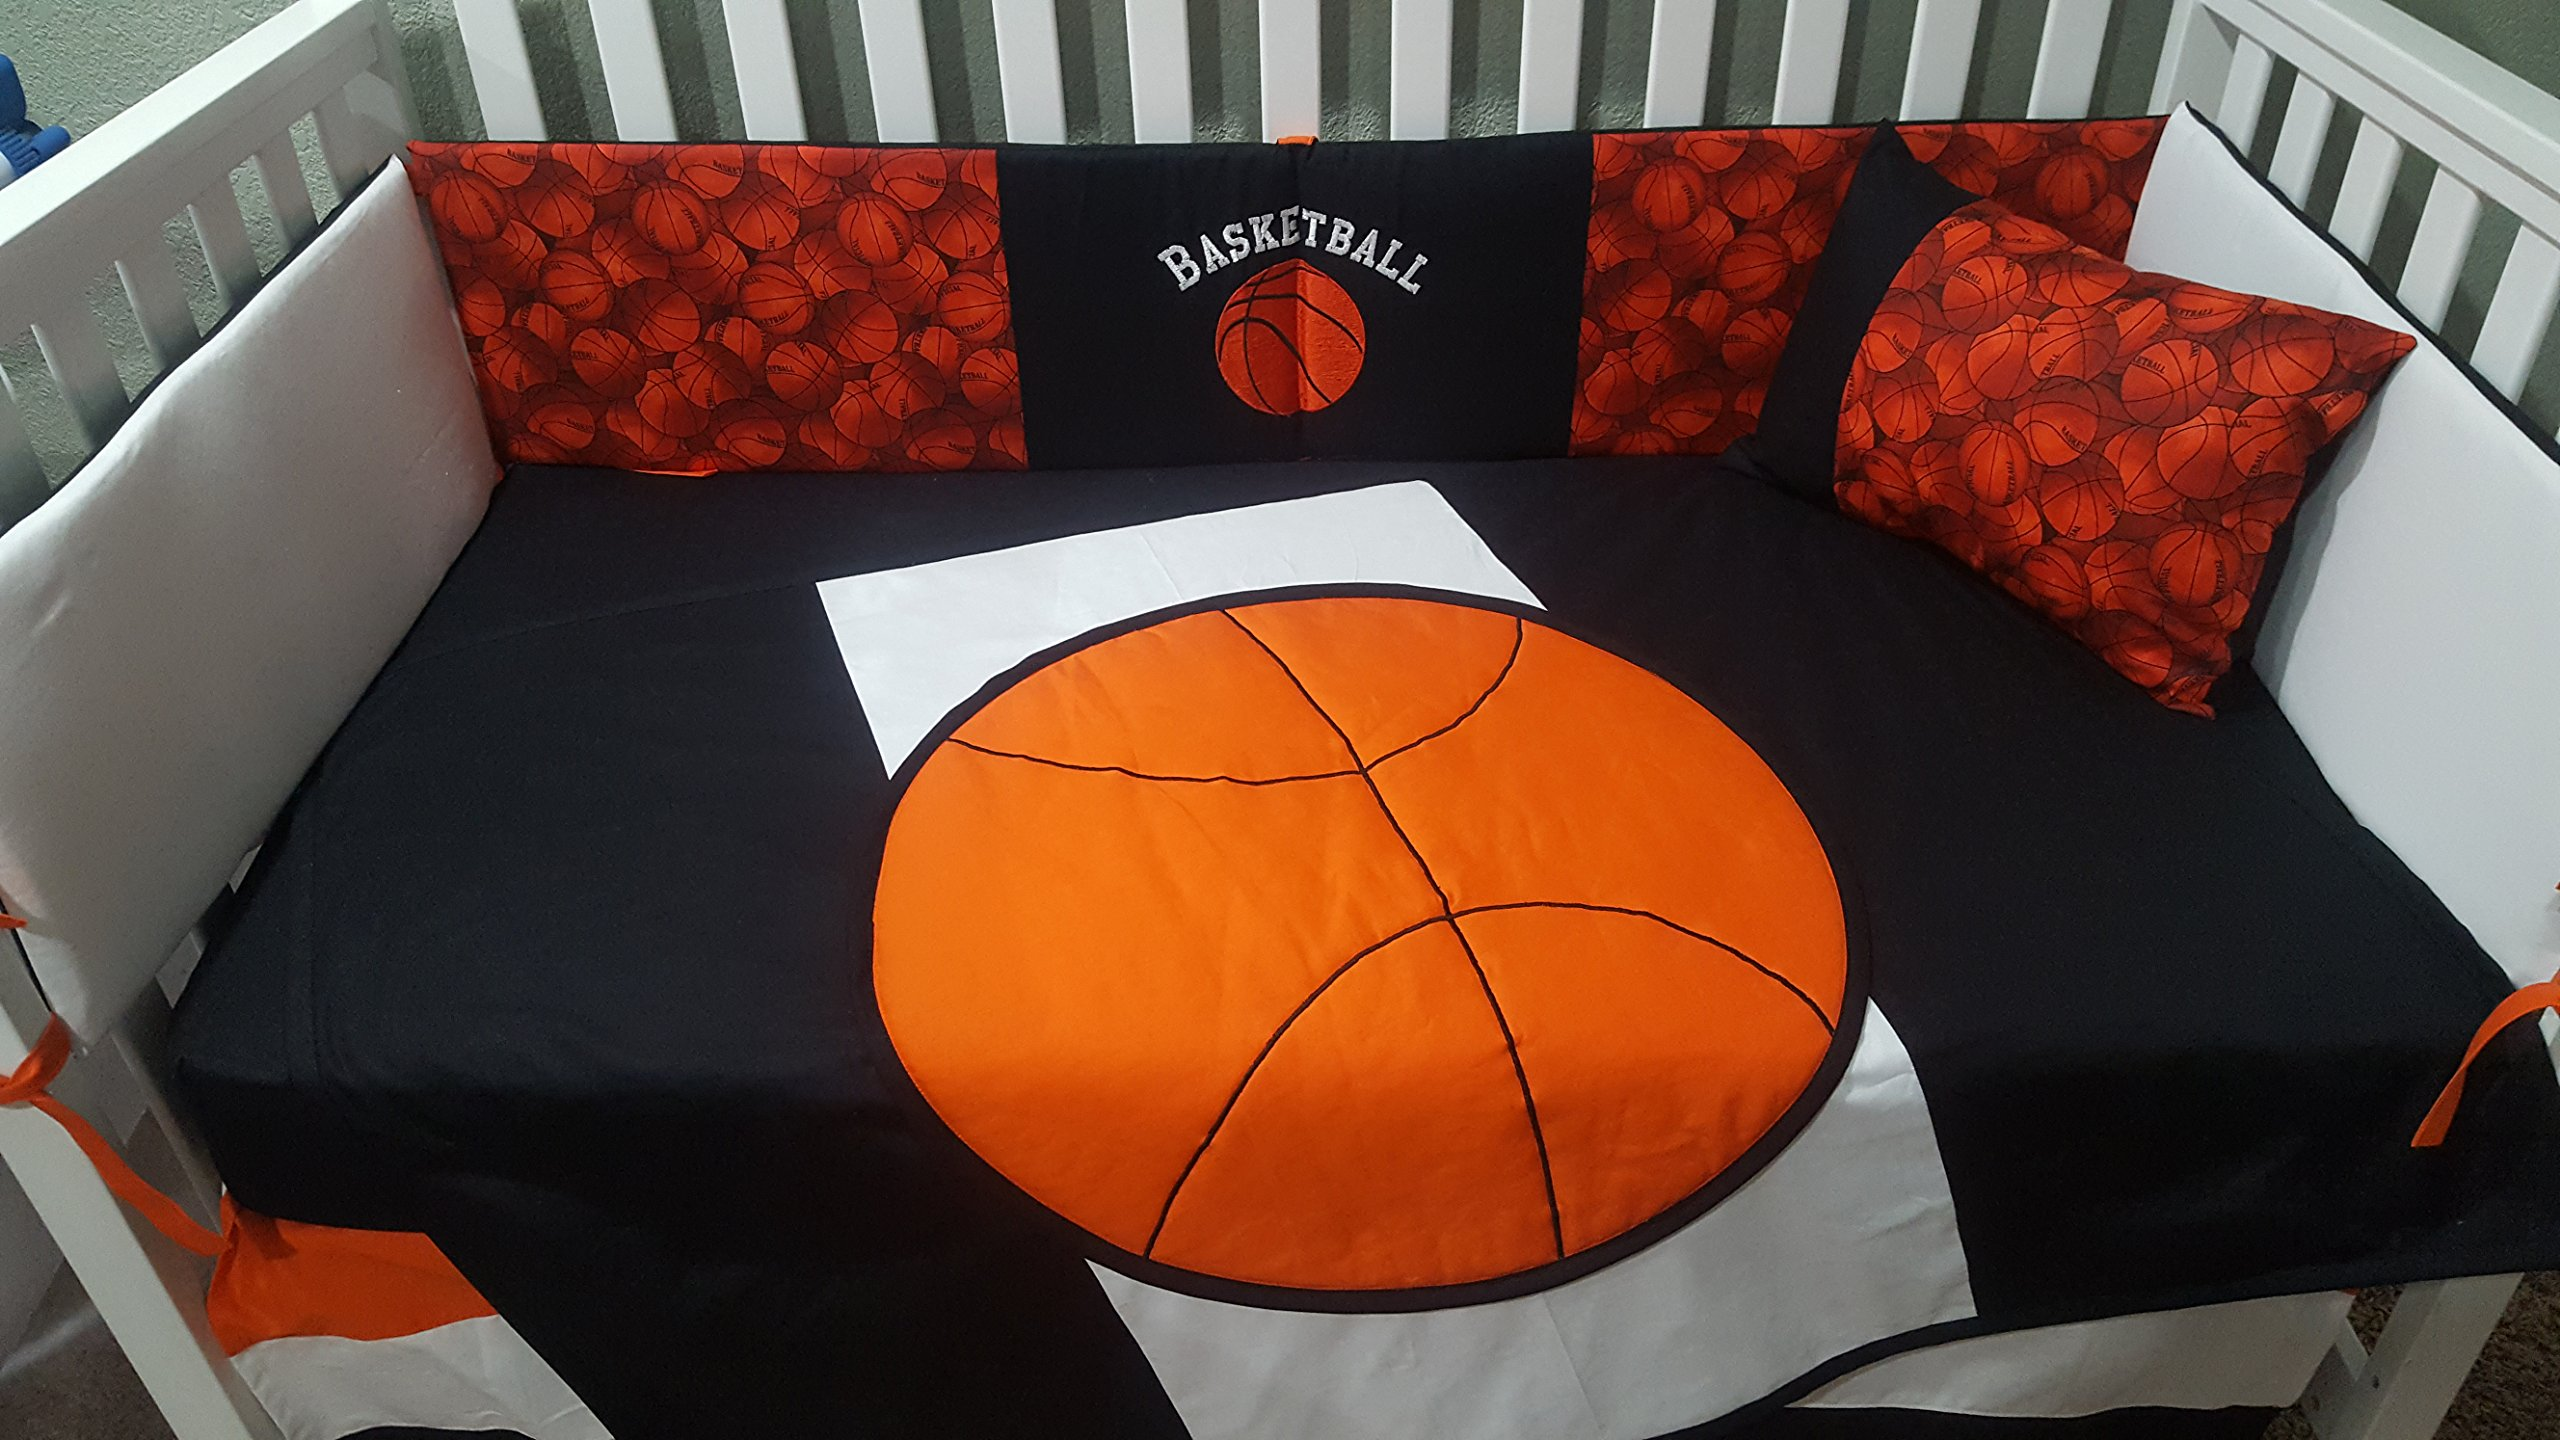 Crib Bedding Set, Basketball Orange, White, Black 6 Piece, Quilted Ball, Embroidered Bumper pads